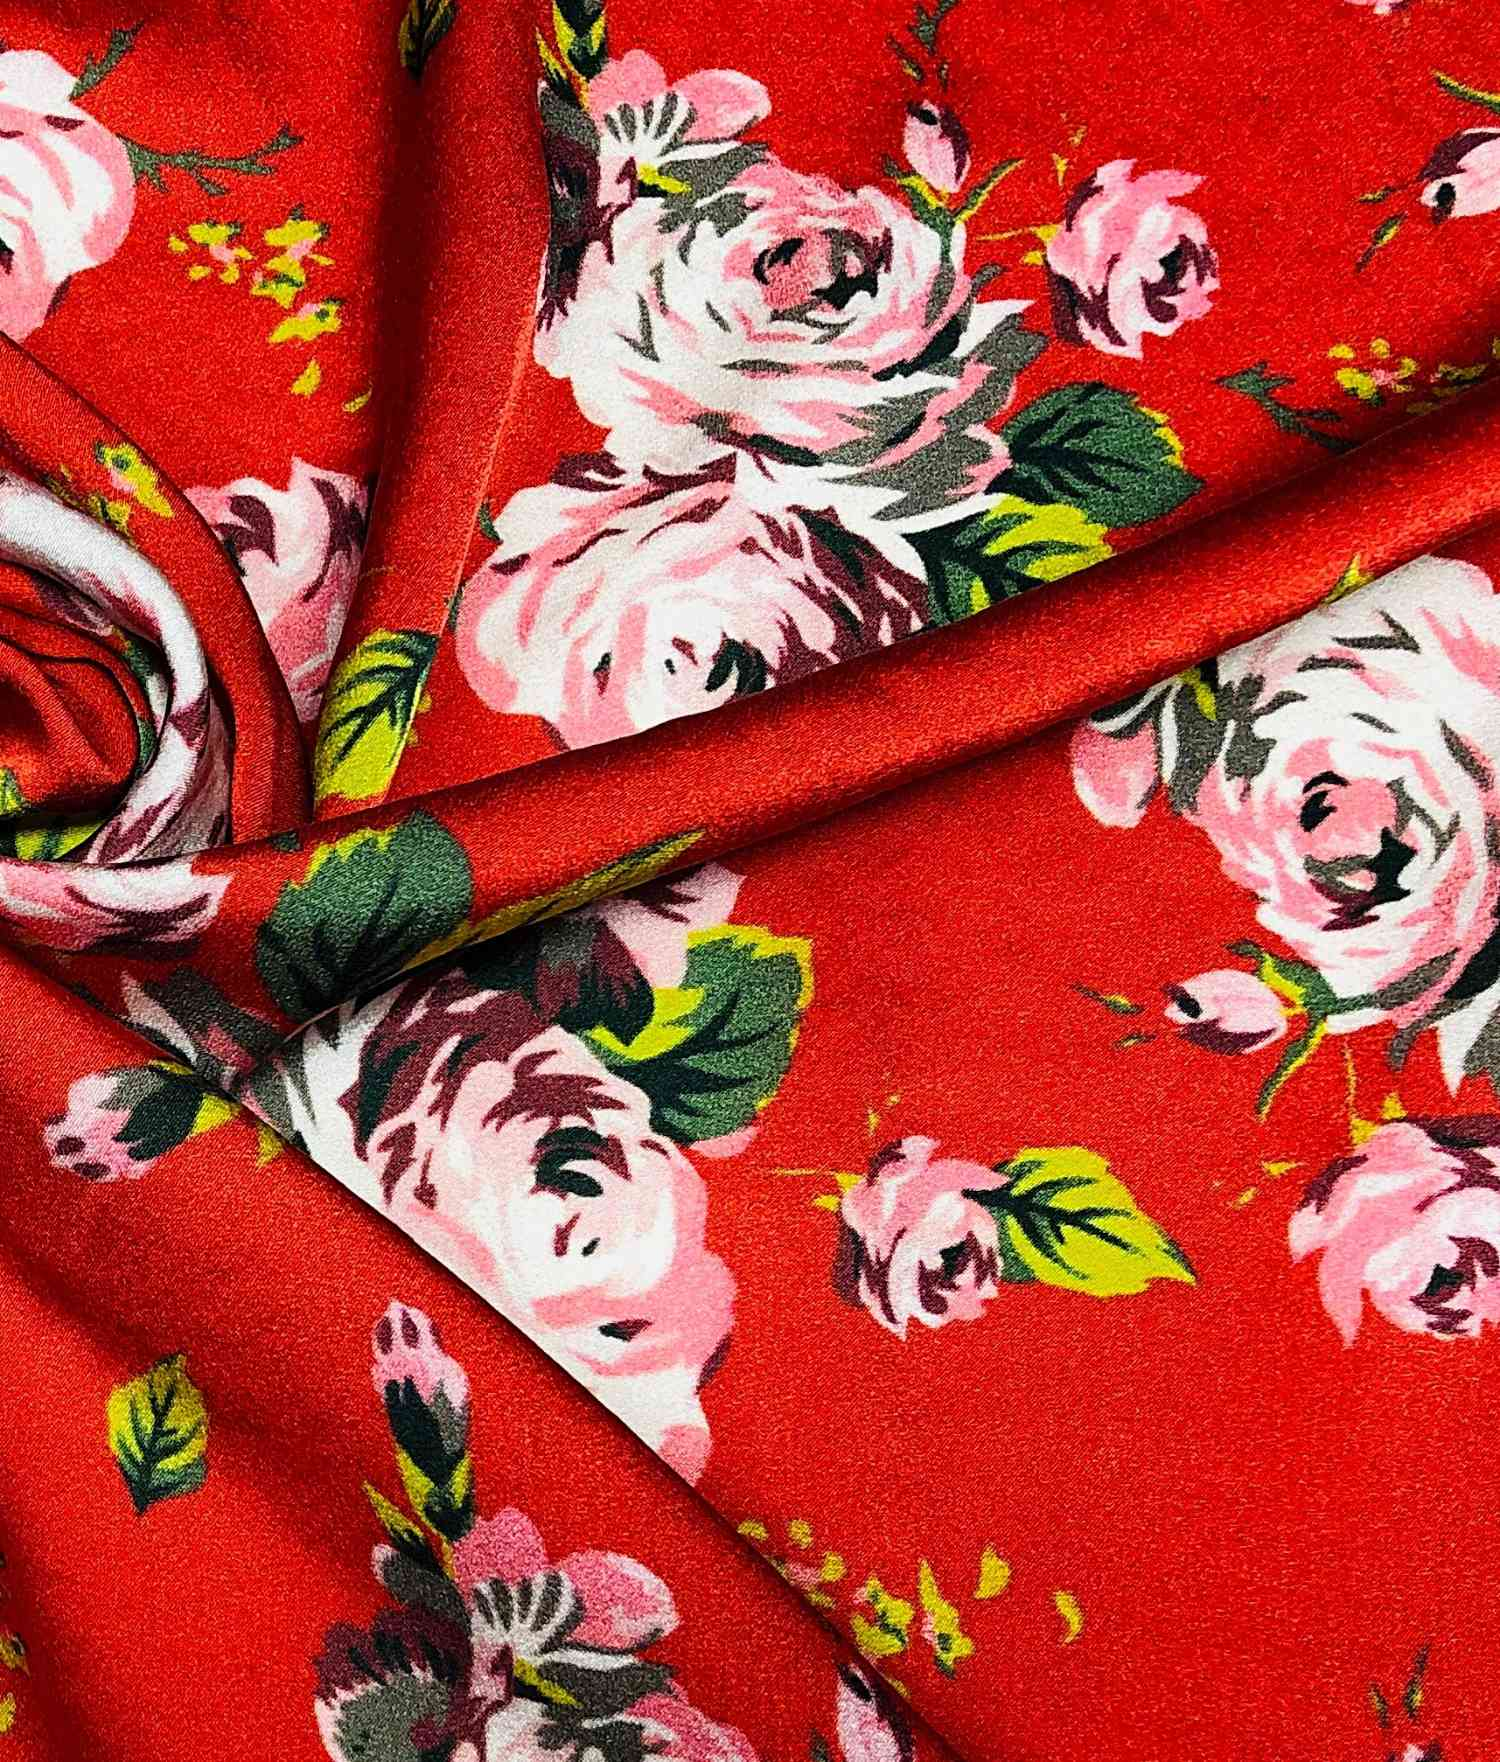 Printed Fabrics - monza new sateen 14mm - MONZA NEW SATEEN 14MM Elastan Silk